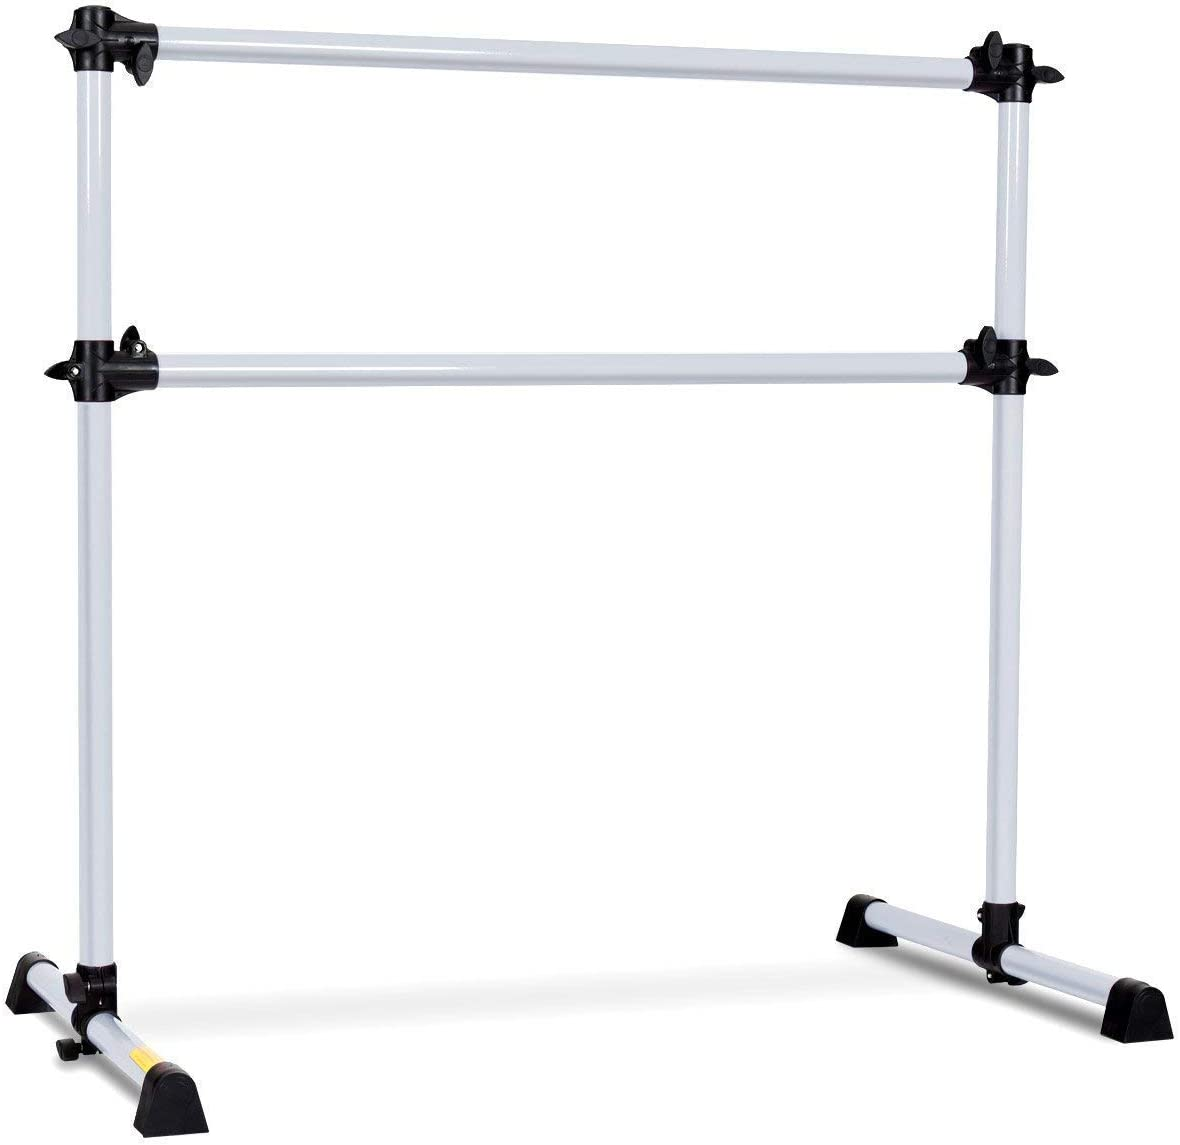 GOFLAME Ballet Barre Portable Double, Freestanding Ballet Barre Adjustable, Heavy Duty Dancing Stretching Ballet for Home,Dance Barre, Fitness Ballet Bar